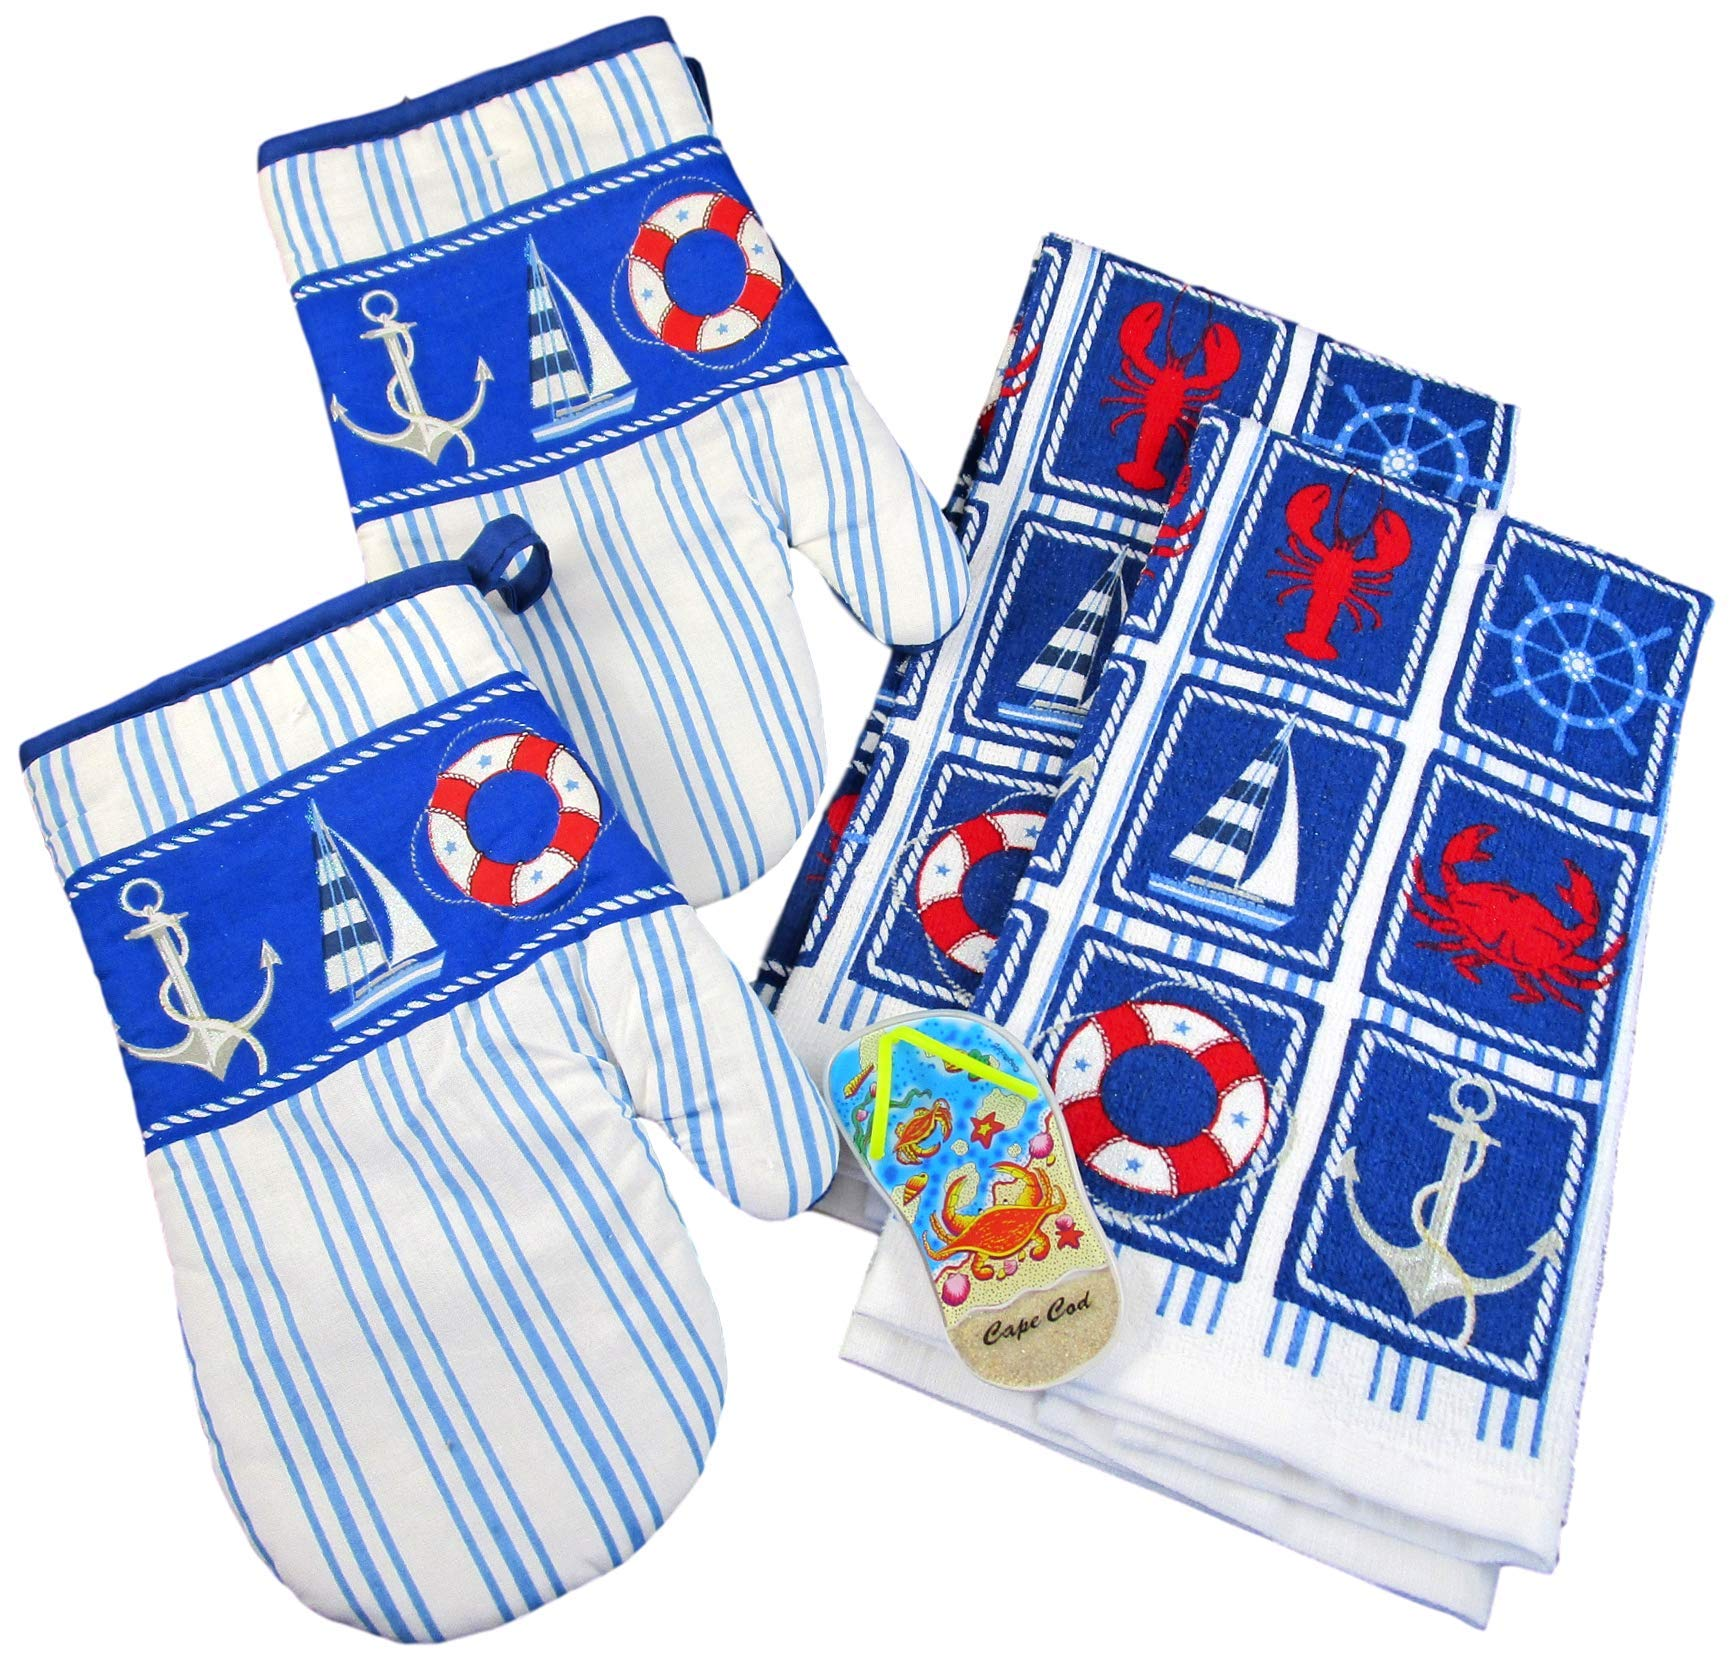 Summertime Nautical Kitchen Gift Set: 100% Cotton Dish Towels and Oven Mitts (Cape Cod Icons -Yellow Flip Flop with Crab)